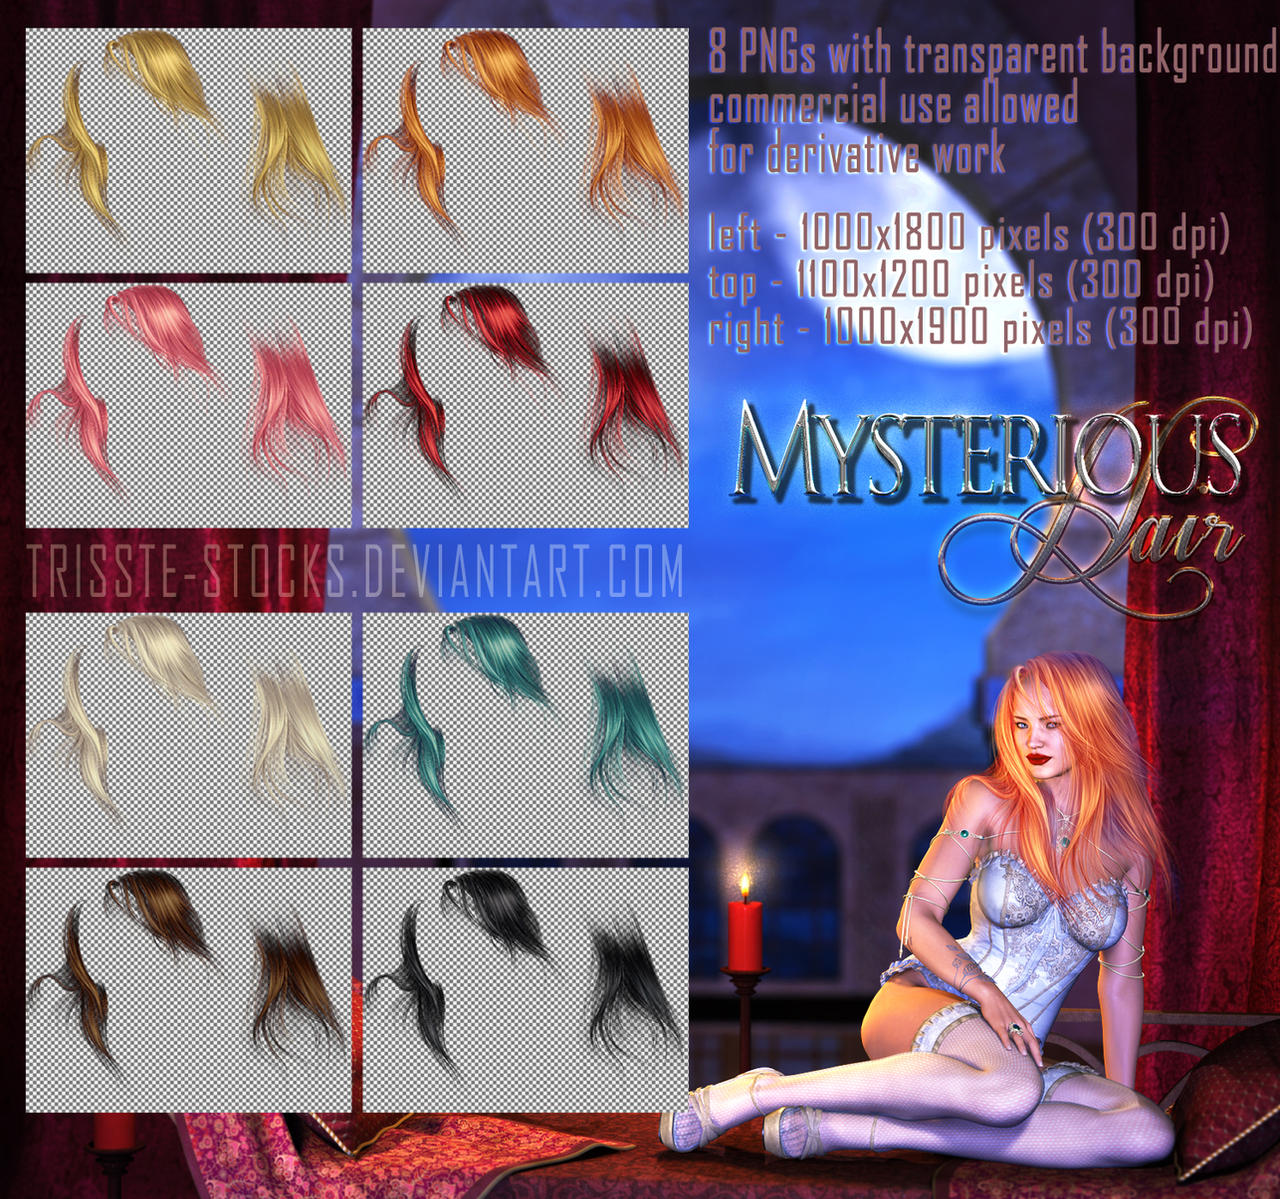 Mysterious HAIR STOCK by Trisste-stocks